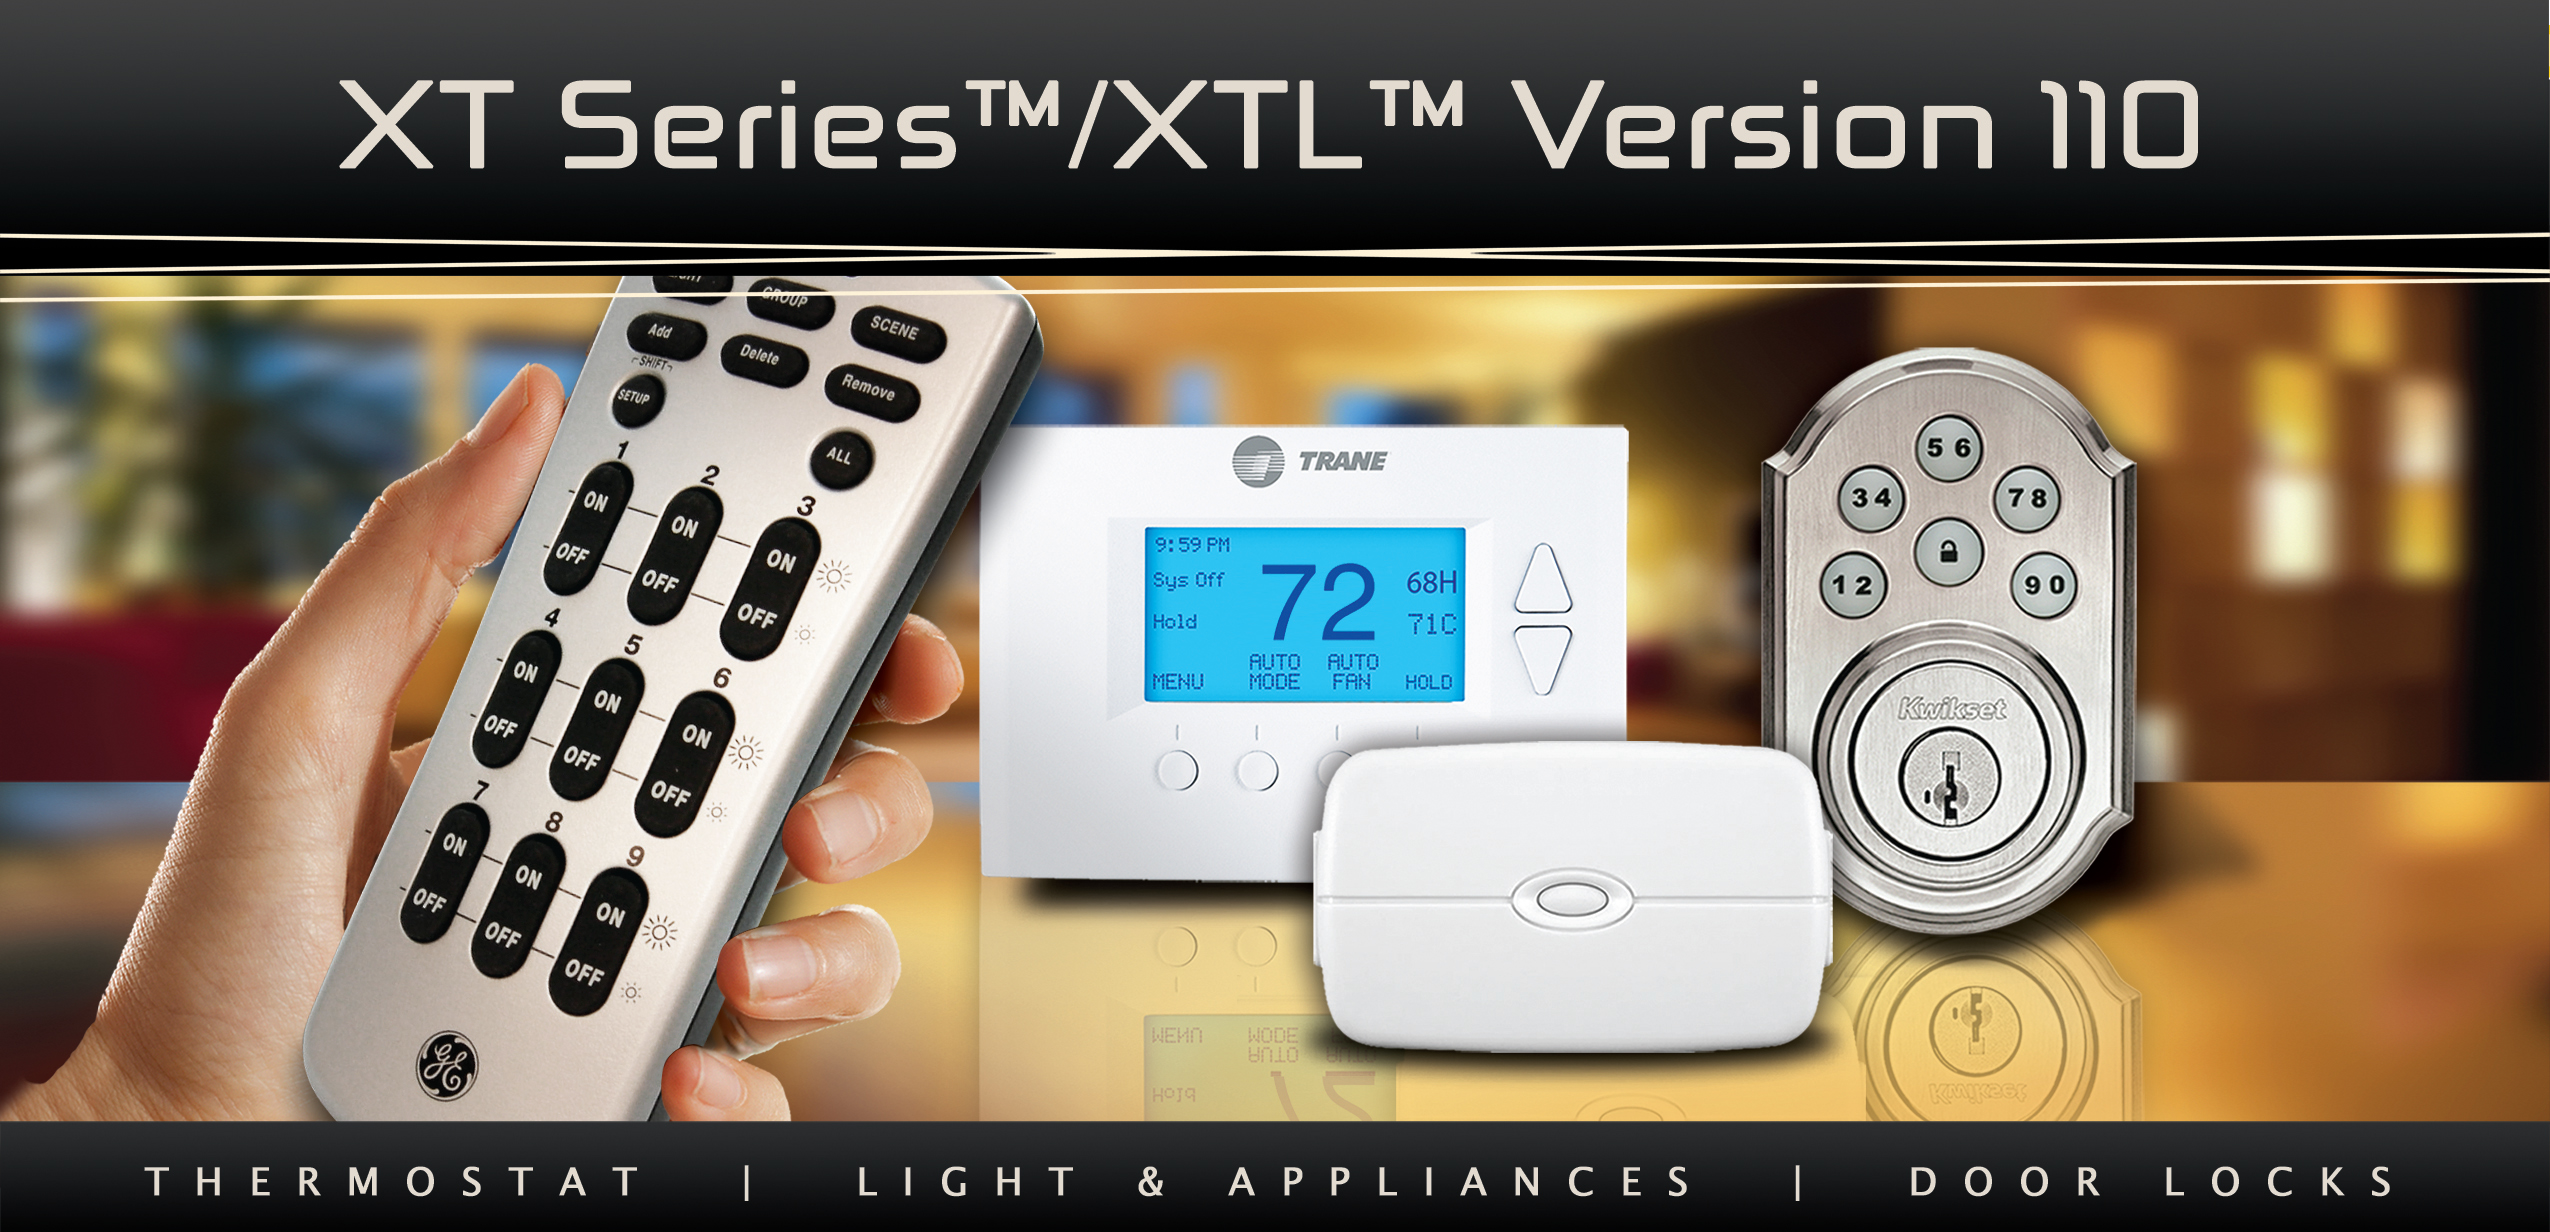 DMP XT and XTL Version 110